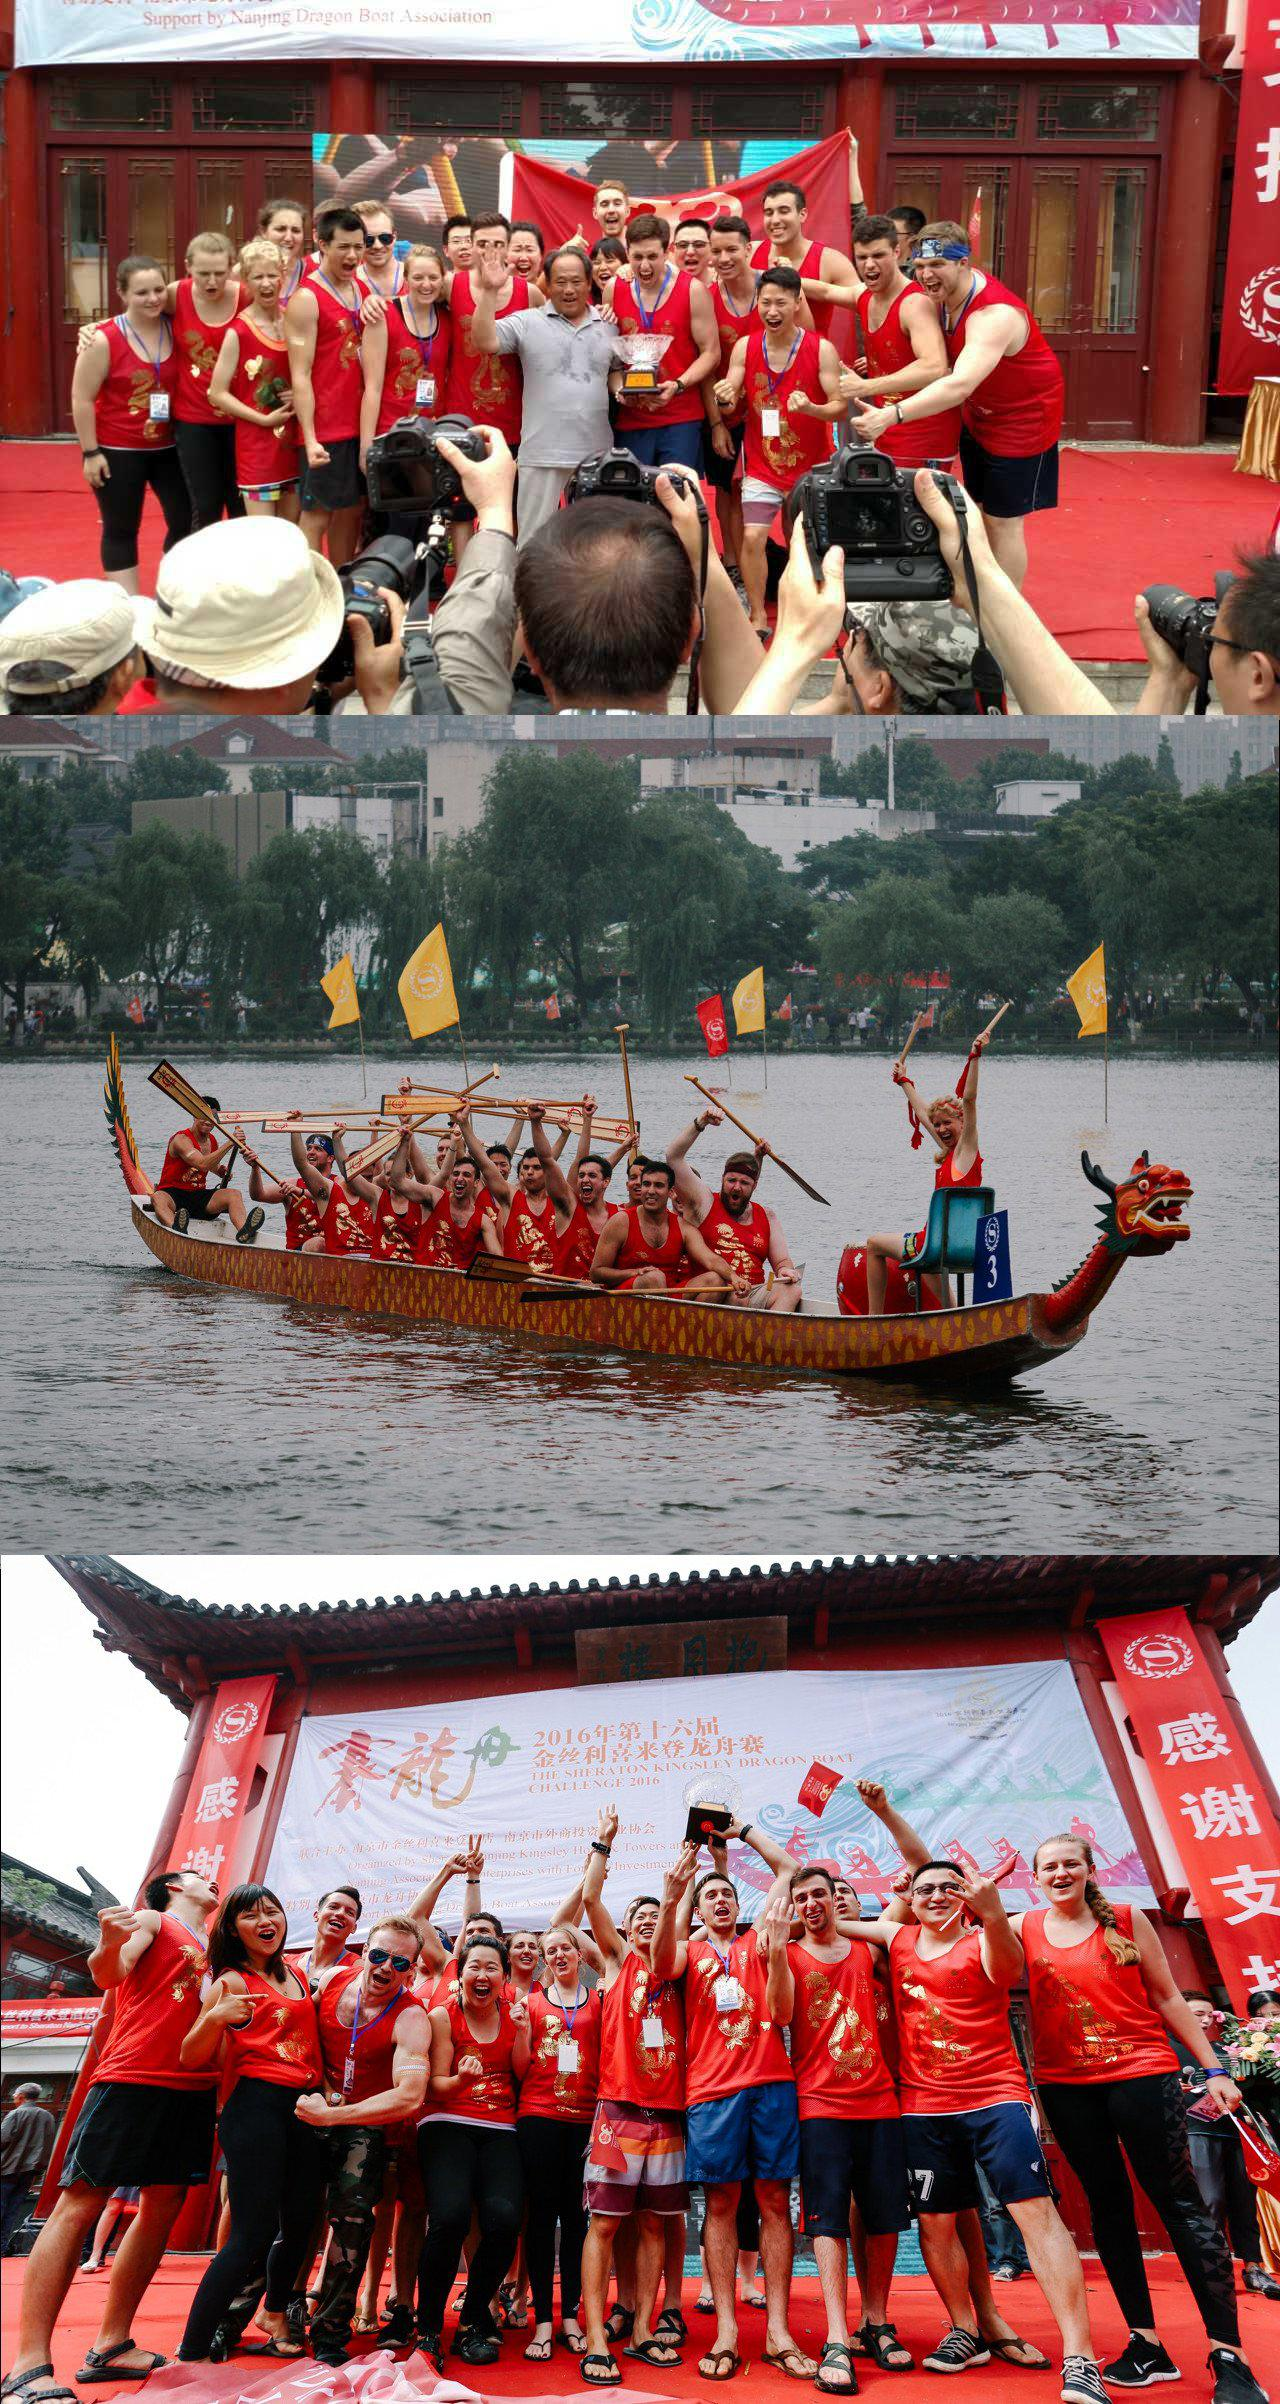 Dragonboat Racers, Hopkins Nanjing Center